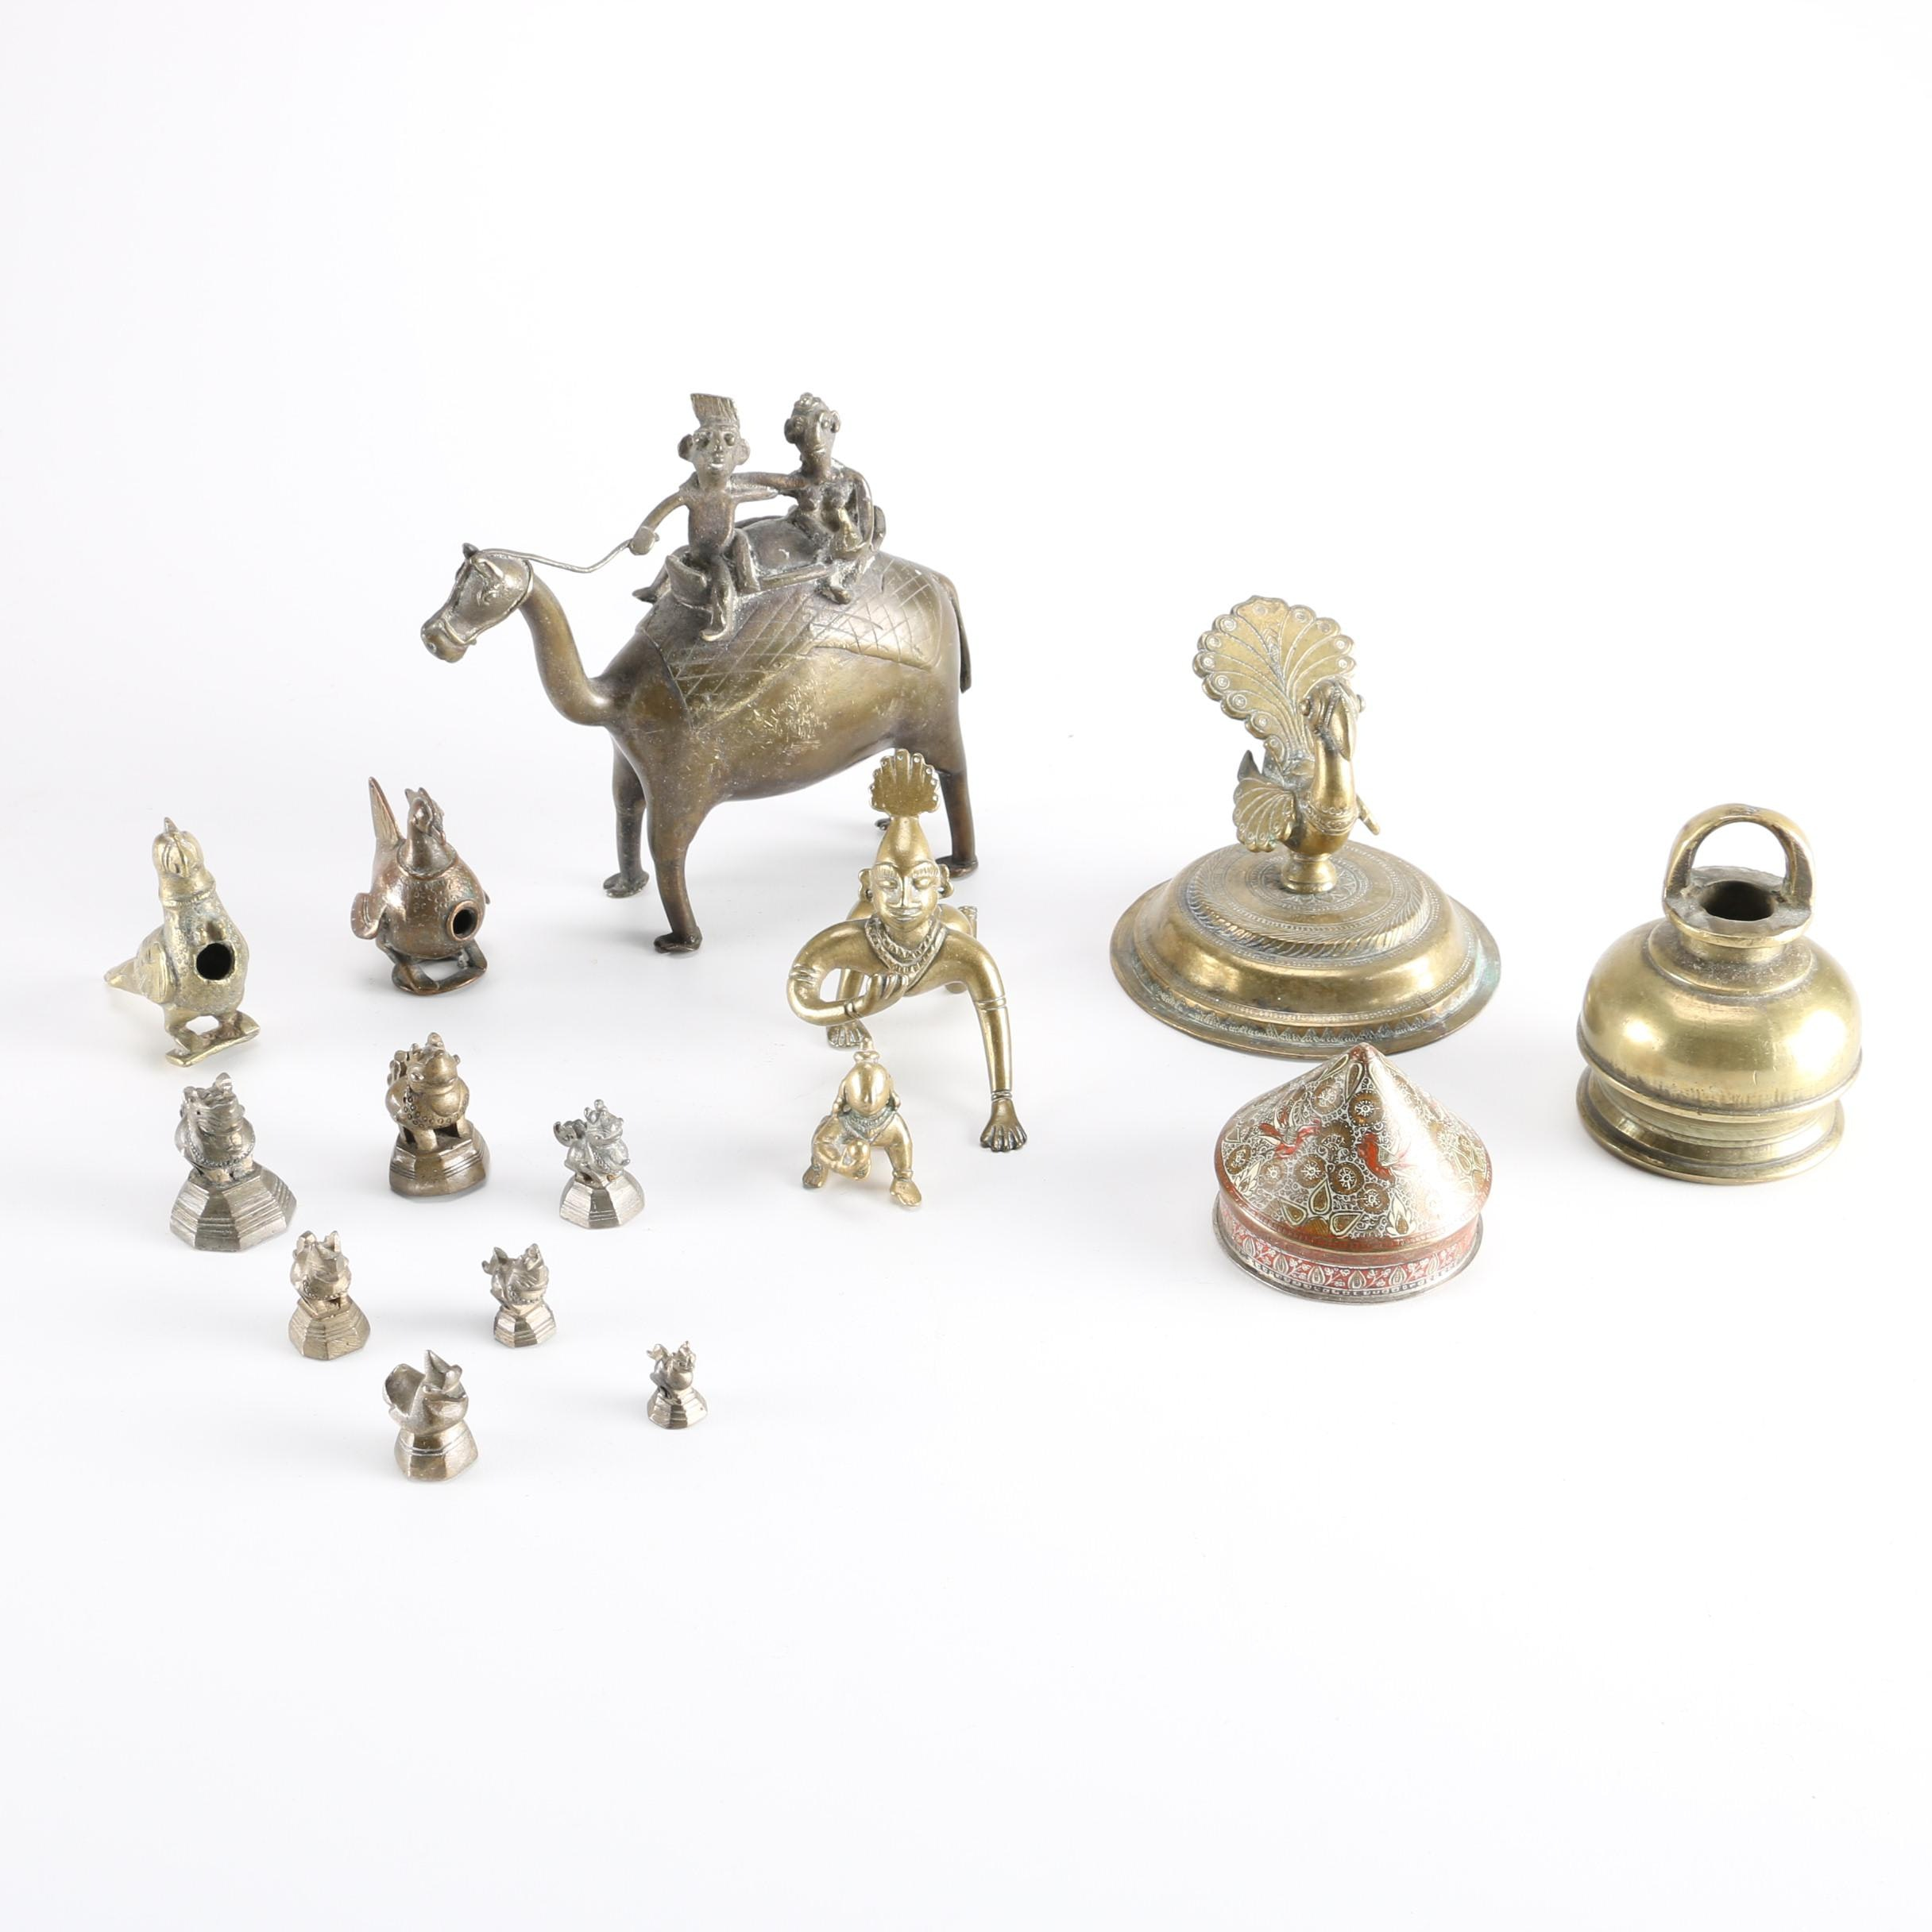 Assortment of Brass Figures